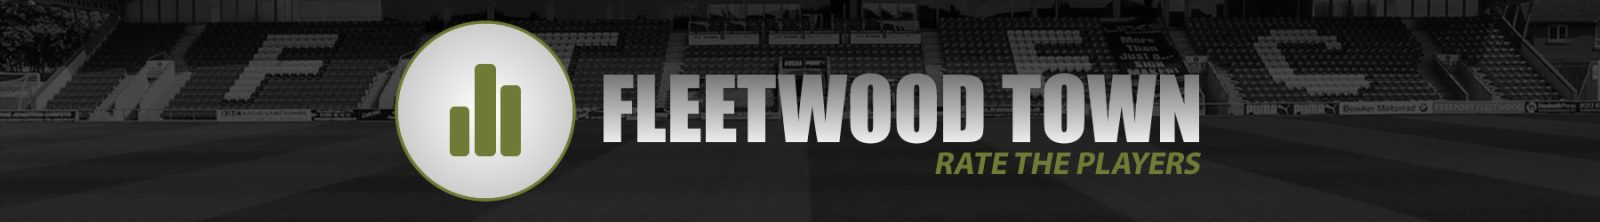 Rate Fleetwood Town